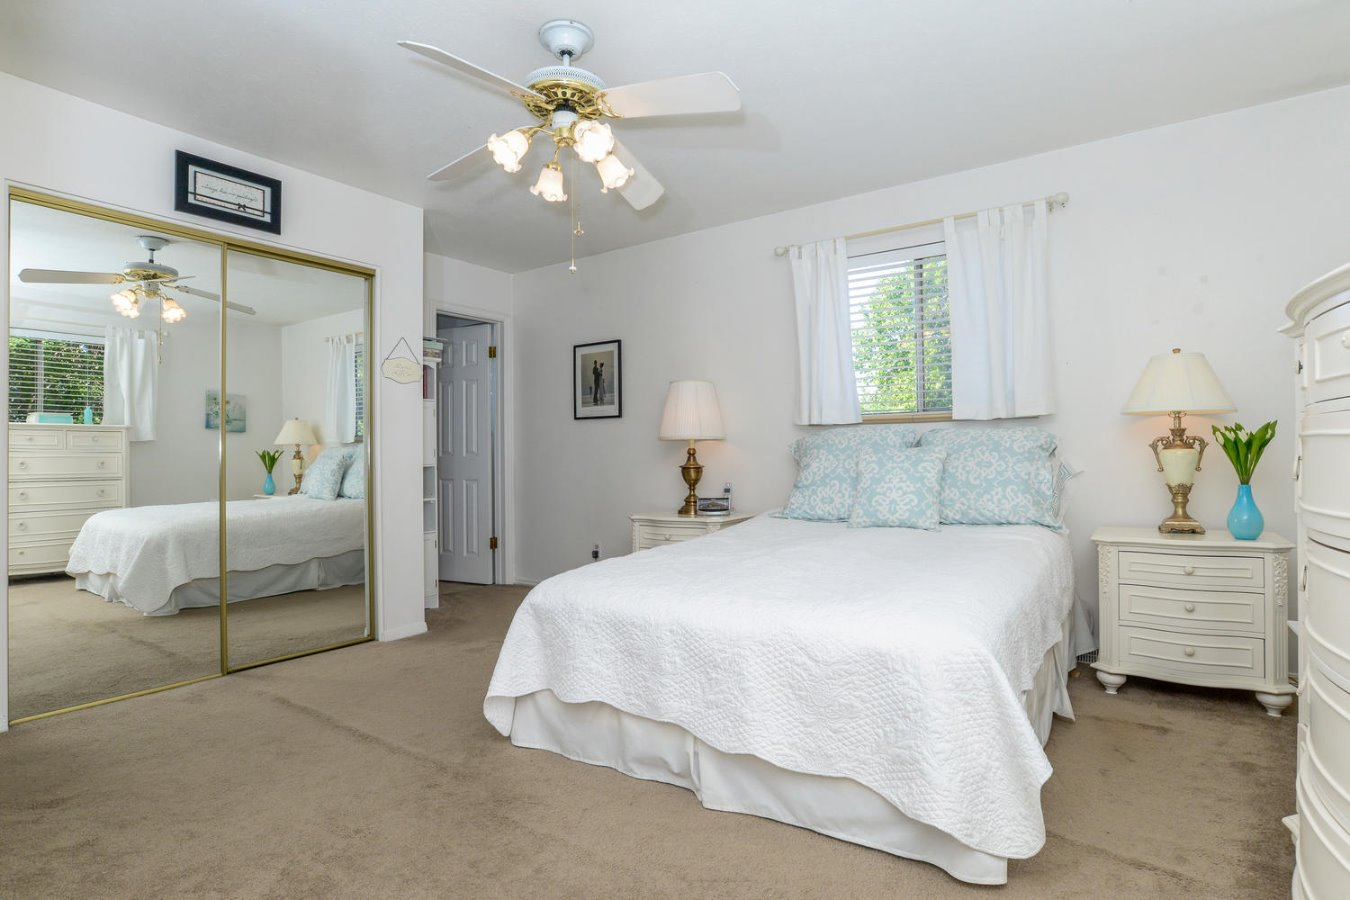 Master Bedroom Features Two Closets + Ceiling Fan